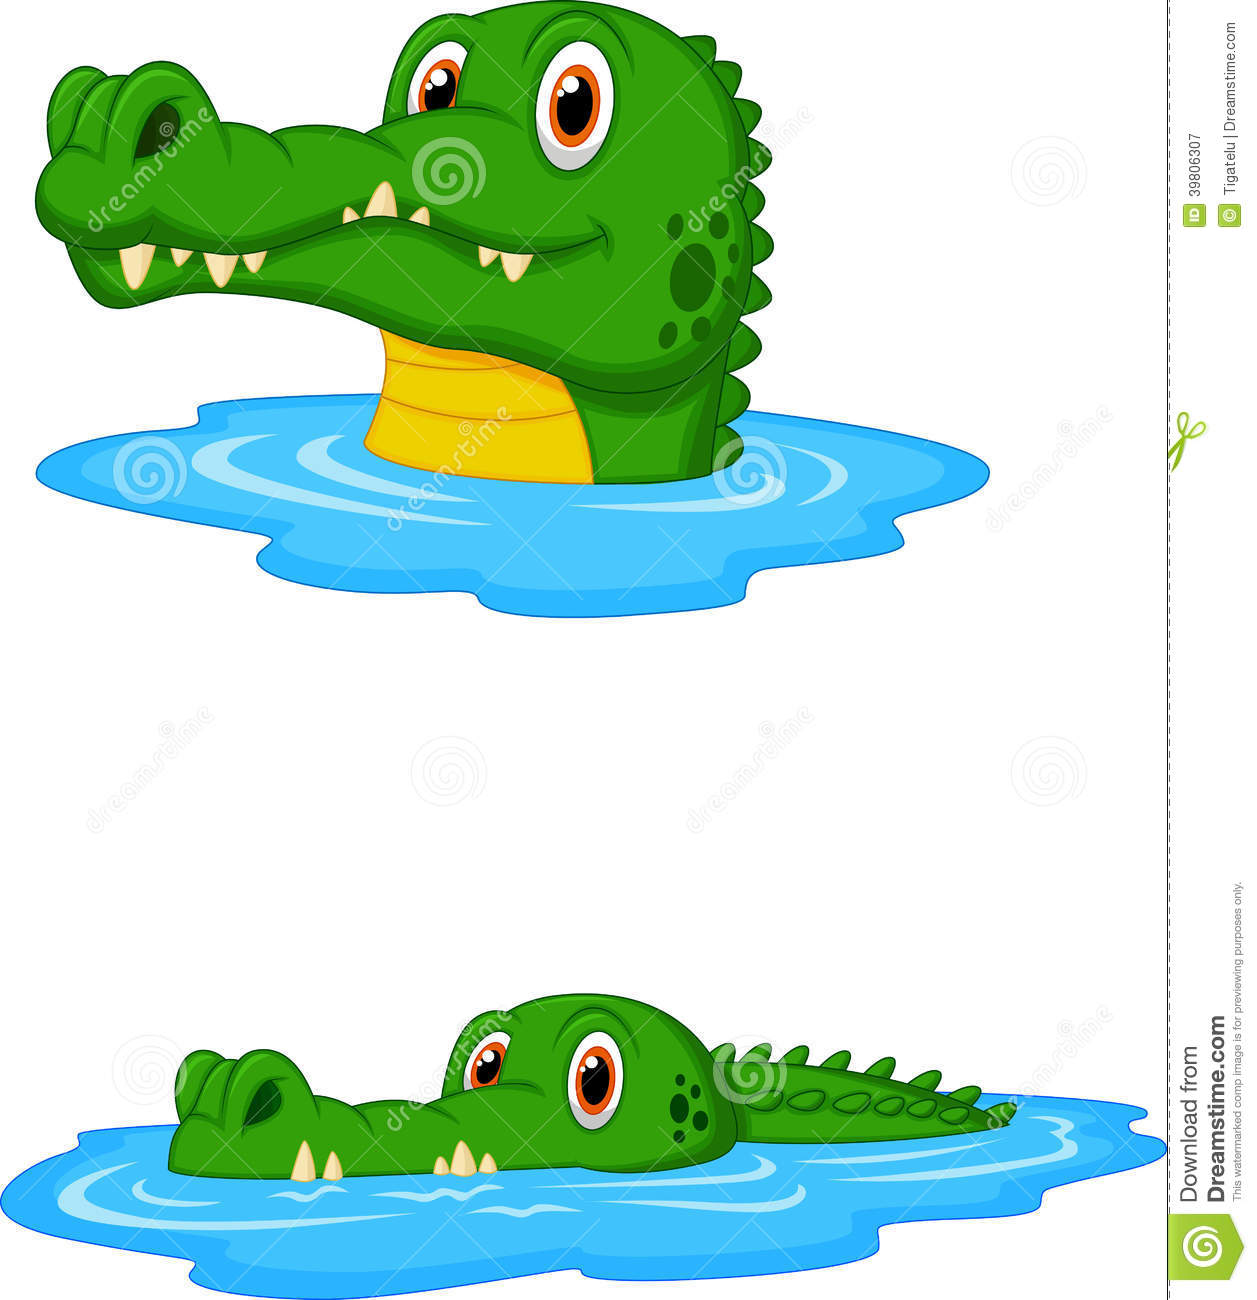 Cute Crocodile Cartoon Swimming Stock Vector ...